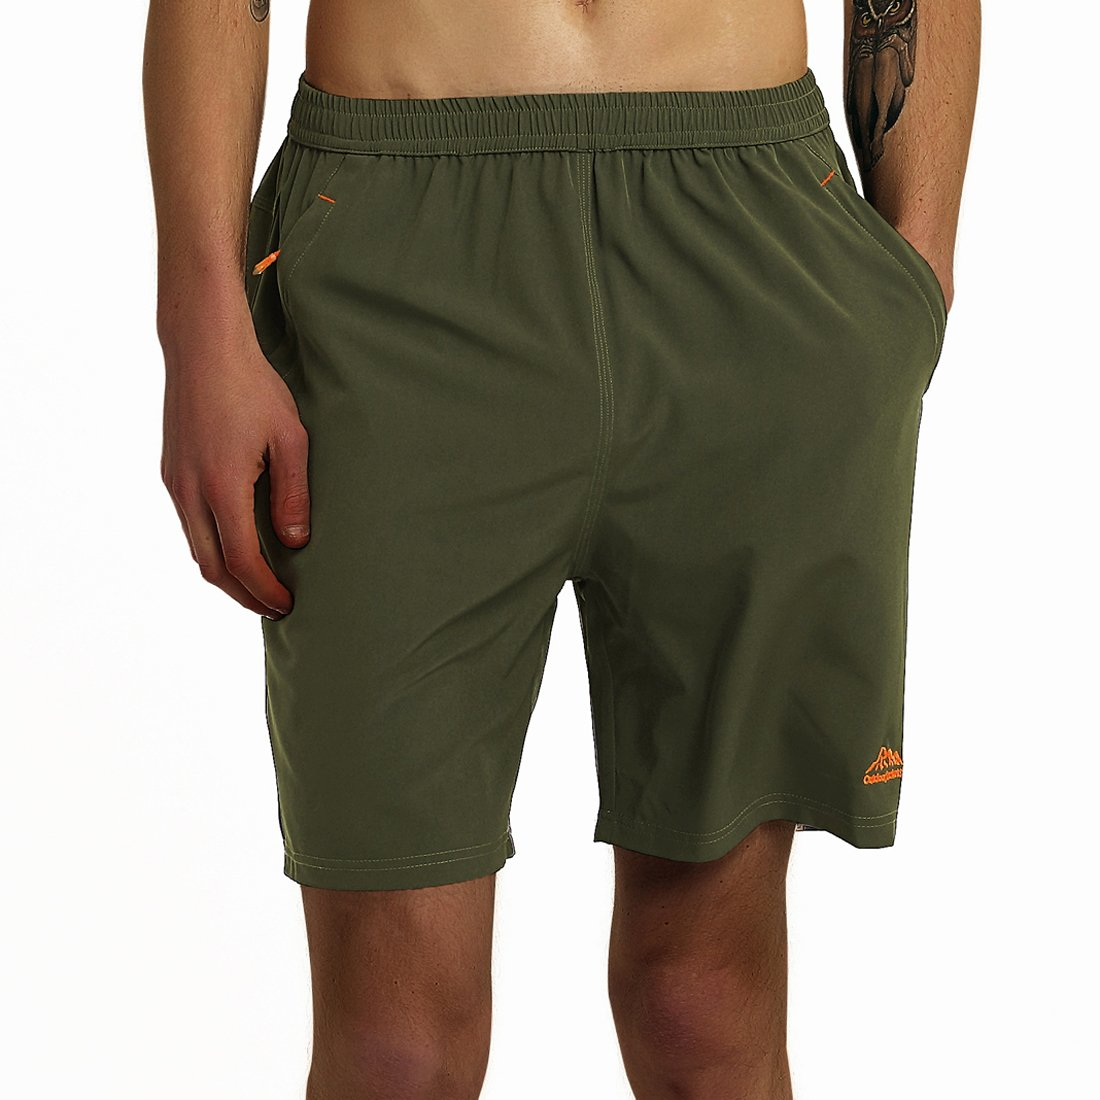 SuperArt Men\'s Gym Shorts Outdoor Sports Running Beach Shorts Lightweight Quick Dry Shorts Reflective with Zipper Pockets (ArmyGreen, Large)